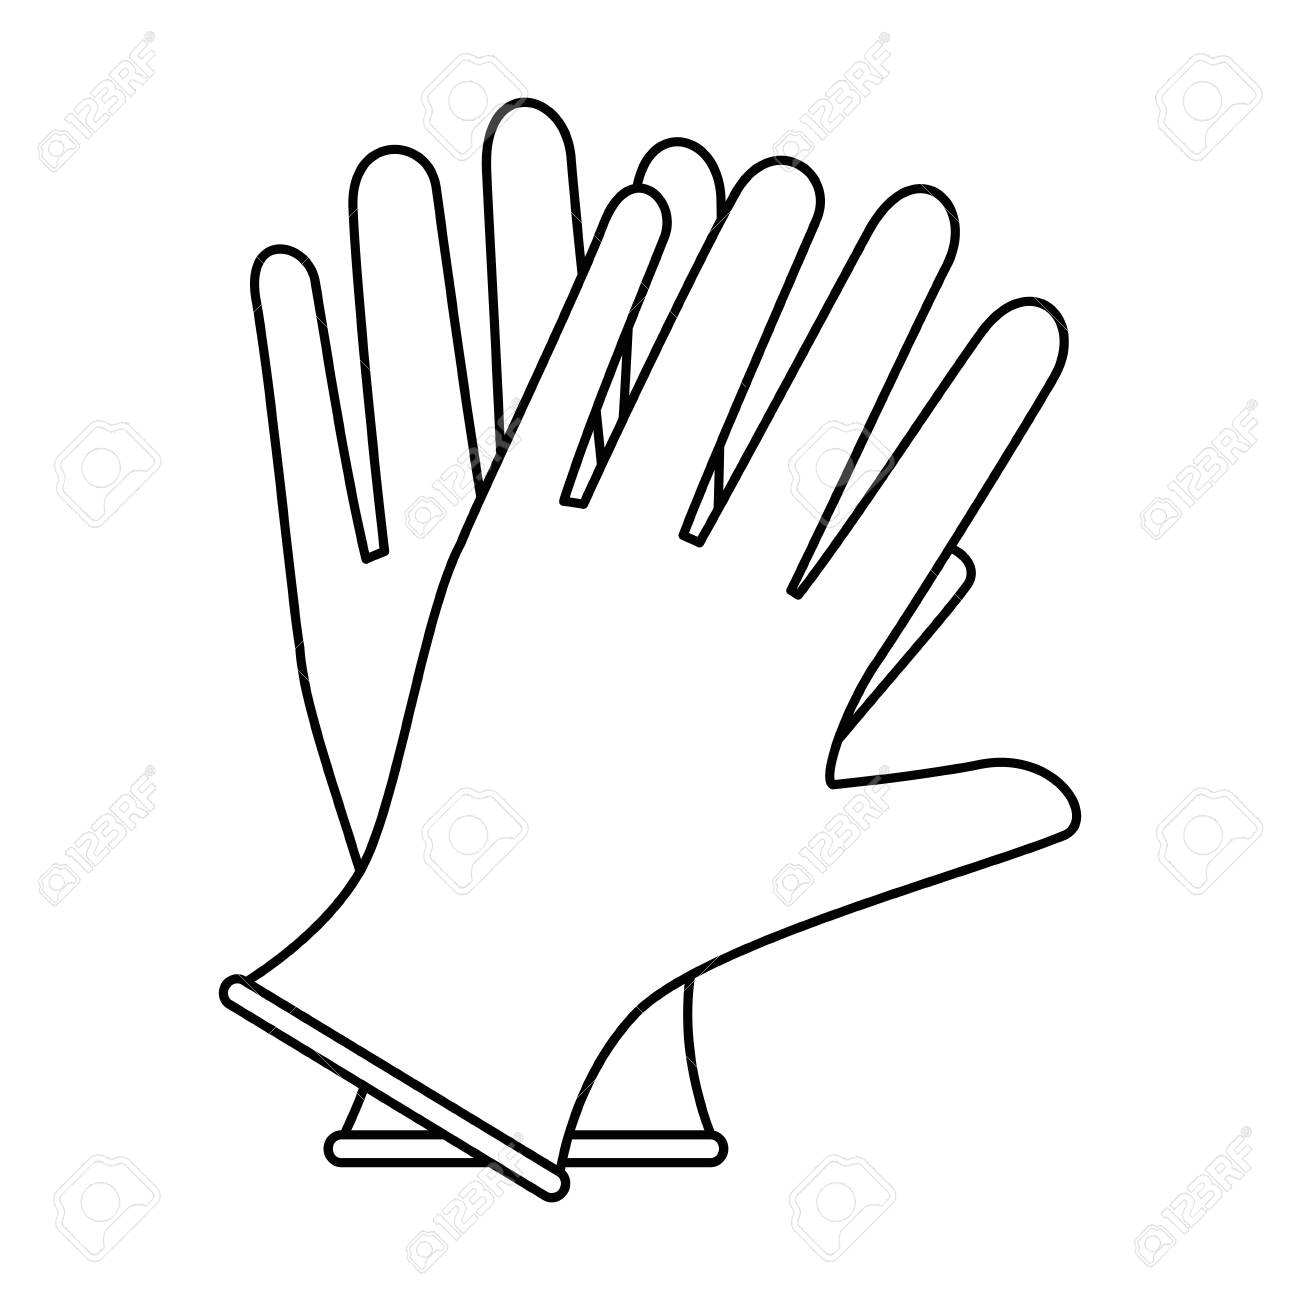 Surgical gloves isolated icon vector illustration design. - 95177628